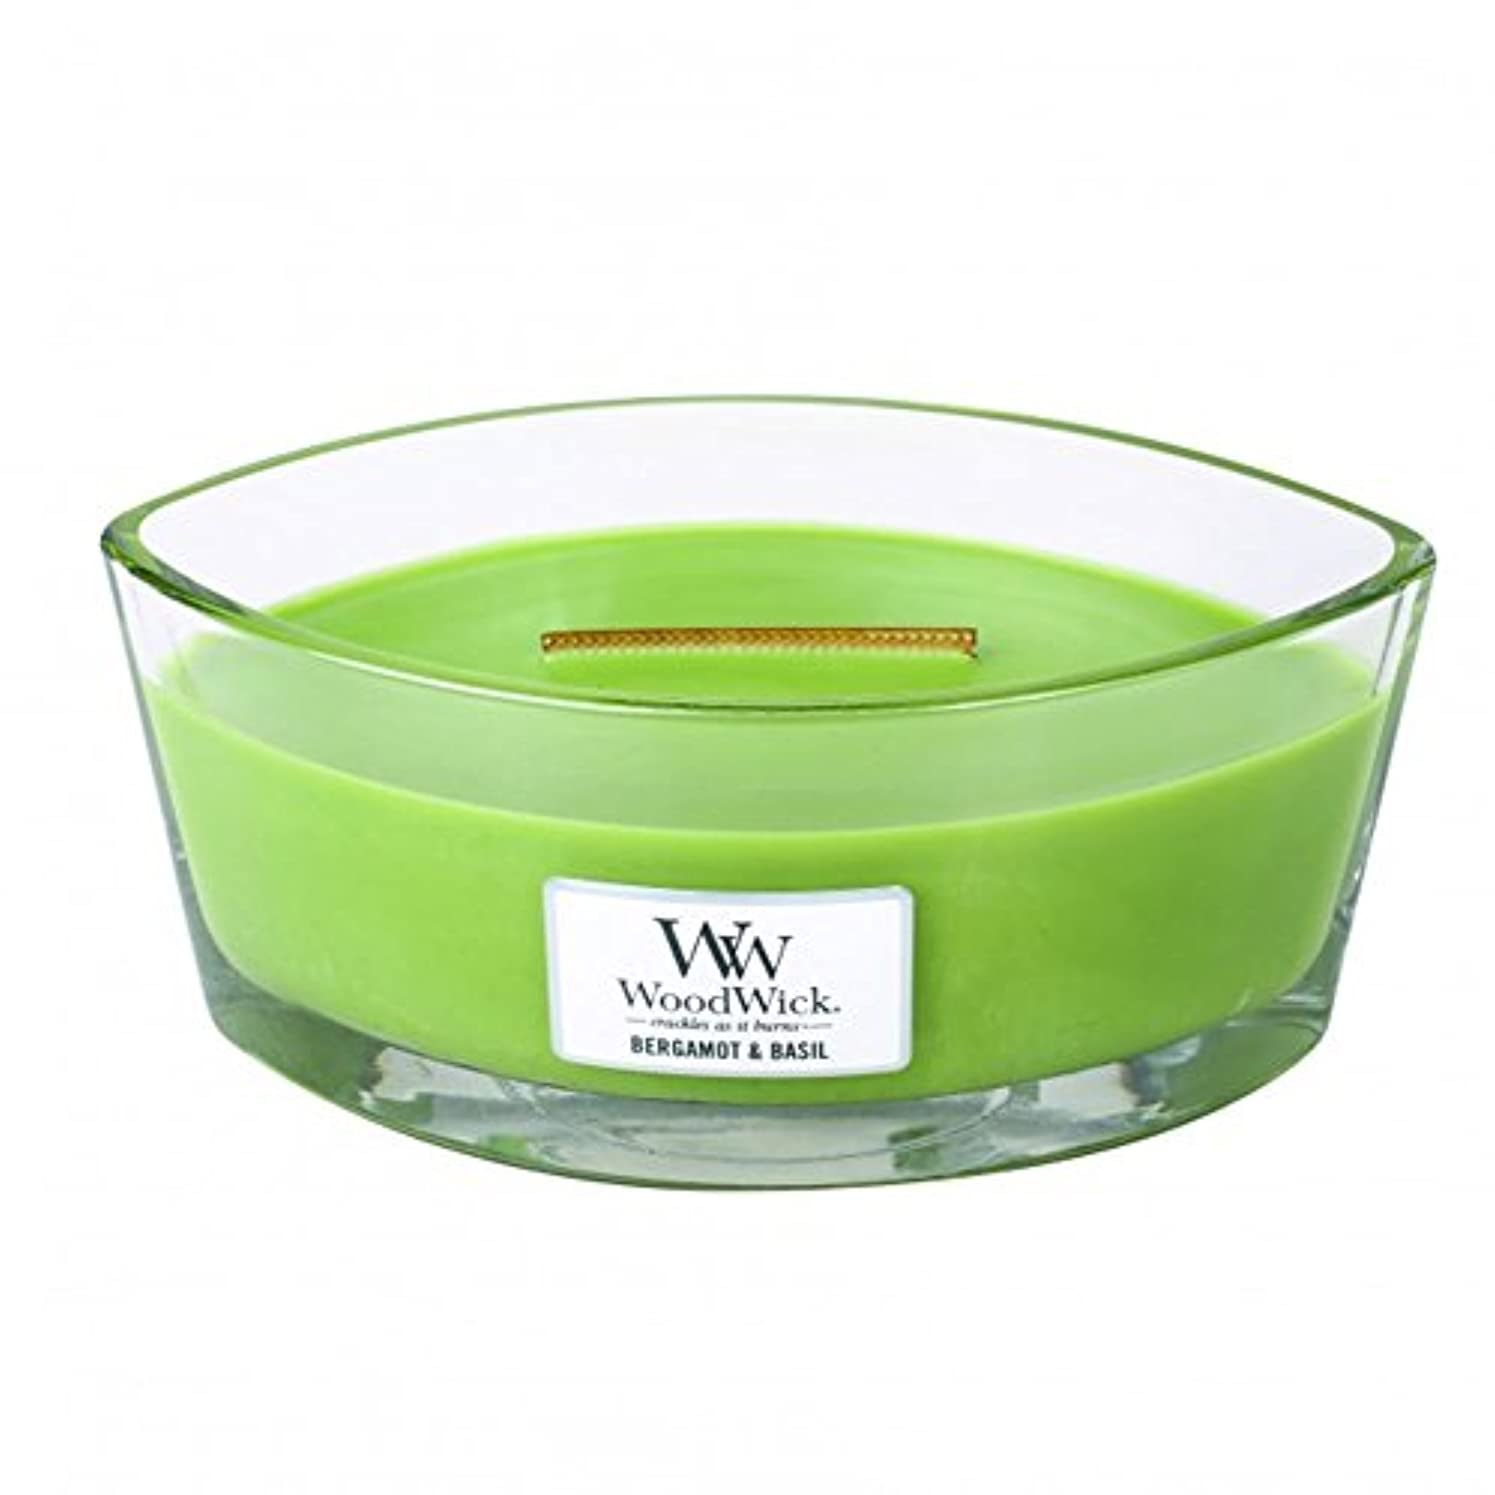 やさしい経験的以降ベルガモットBasil Hearthwick Flame Large Scented Candle by WoodWick